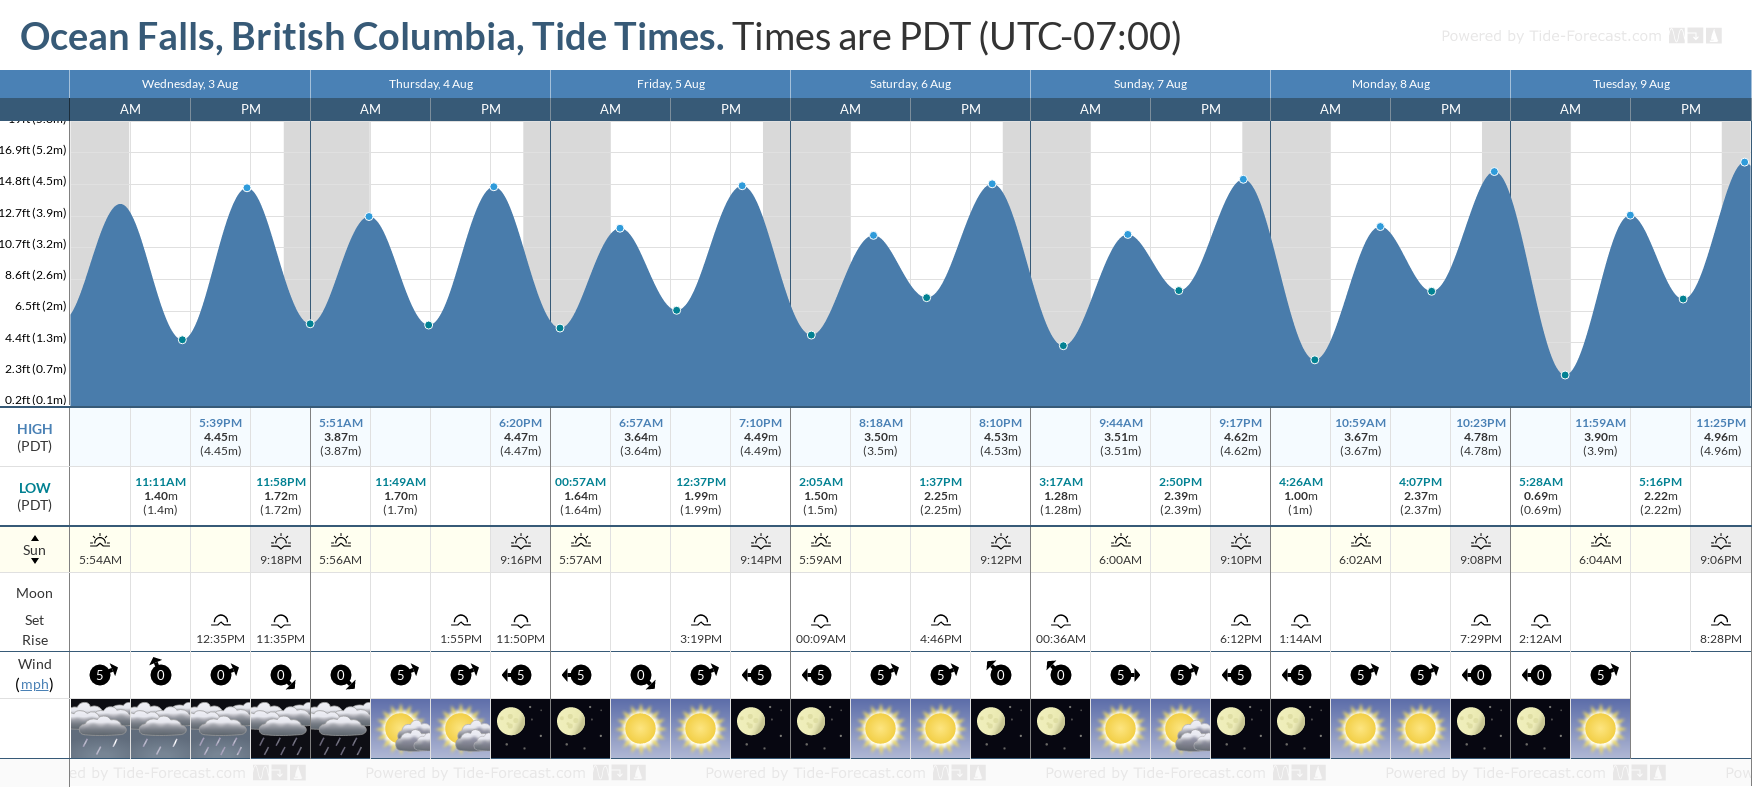 Ocean Falls, British Columbia Tide Chart including high and low tide tide times for the next 7 days